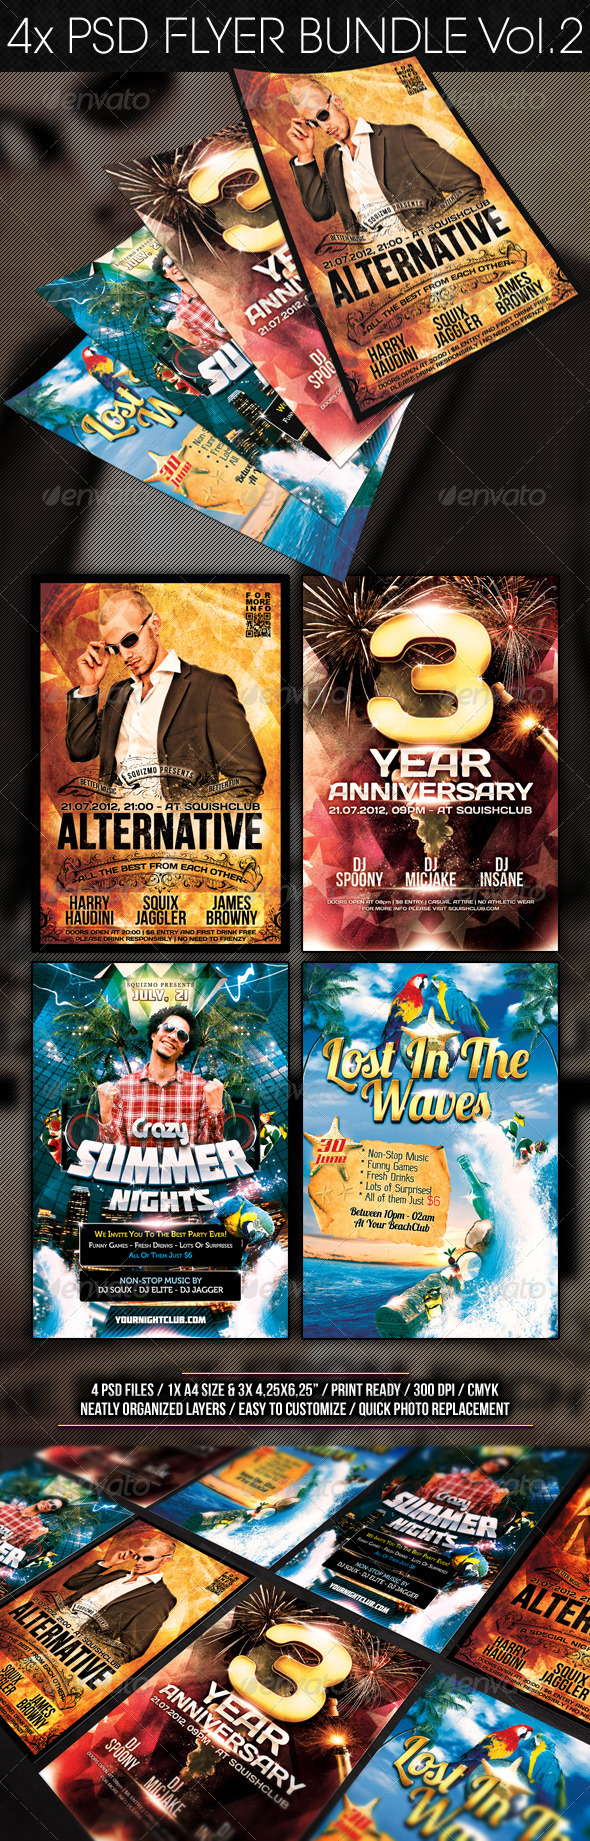 GraphicRiver Flyer Bundle Vol.2 2280997